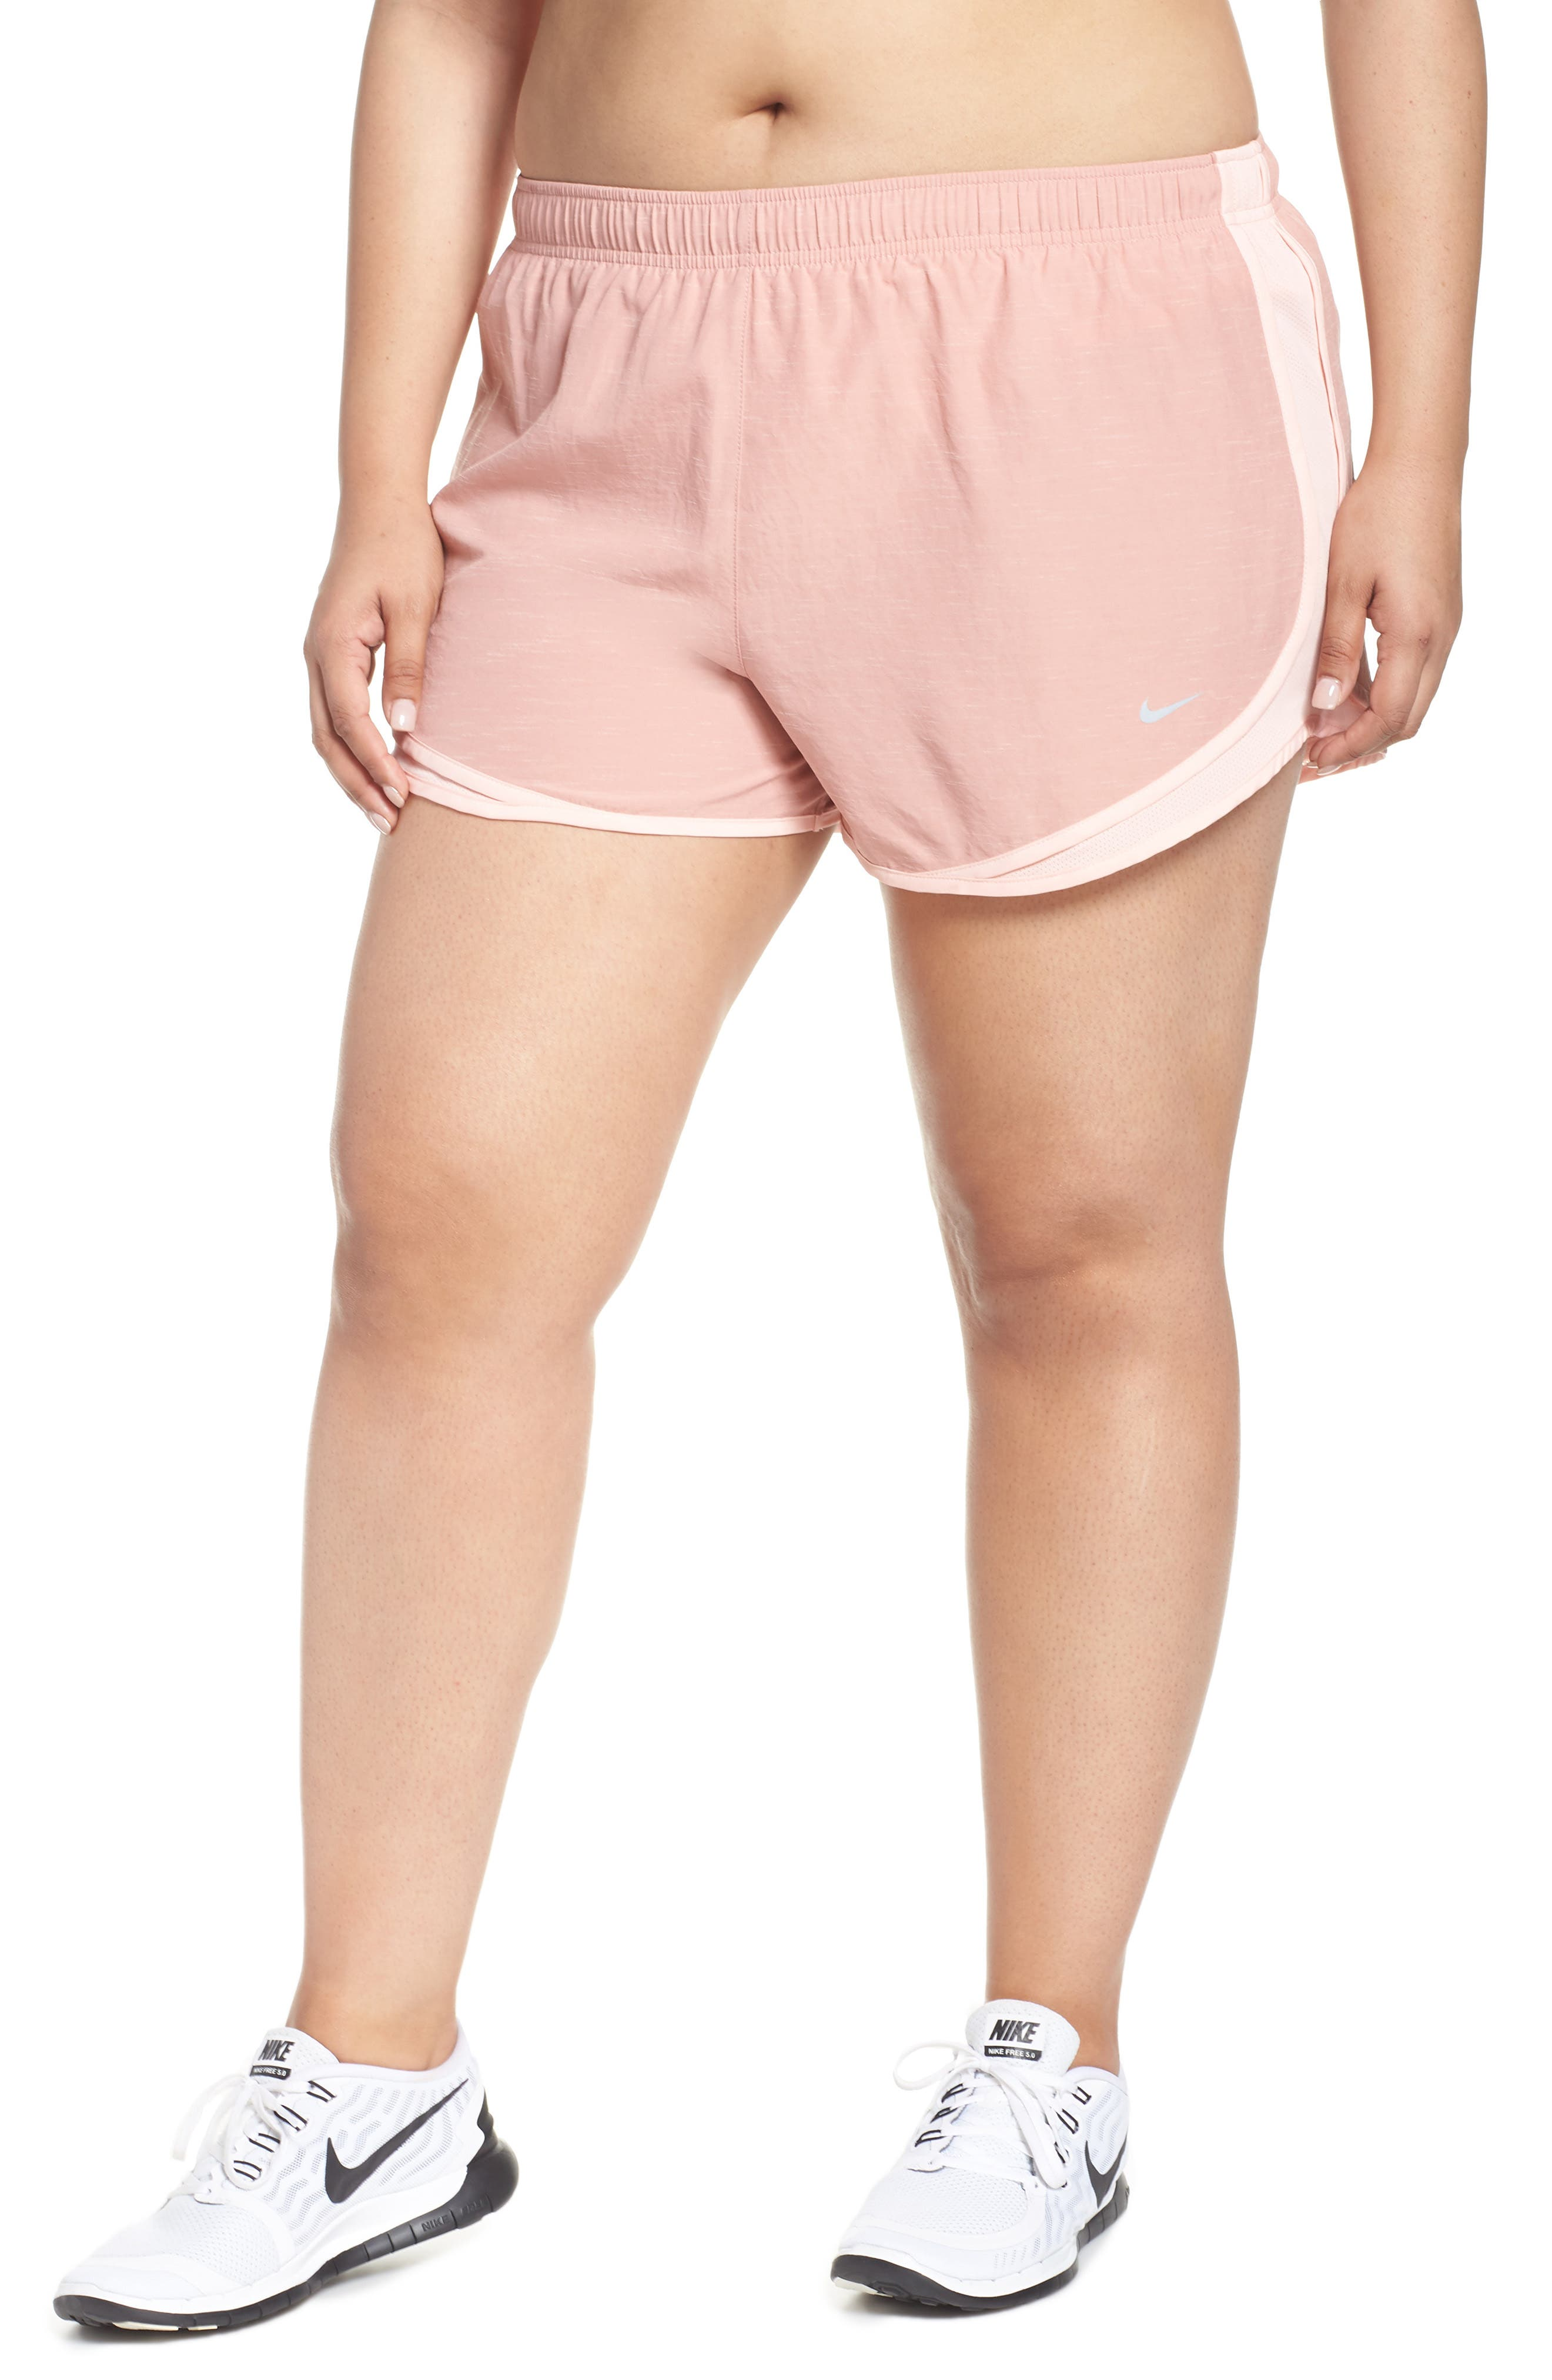 Dry Tempo High Rise Running Shorts,                             Main thumbnail 1, color,                             RUST PINK/ STORM PINK